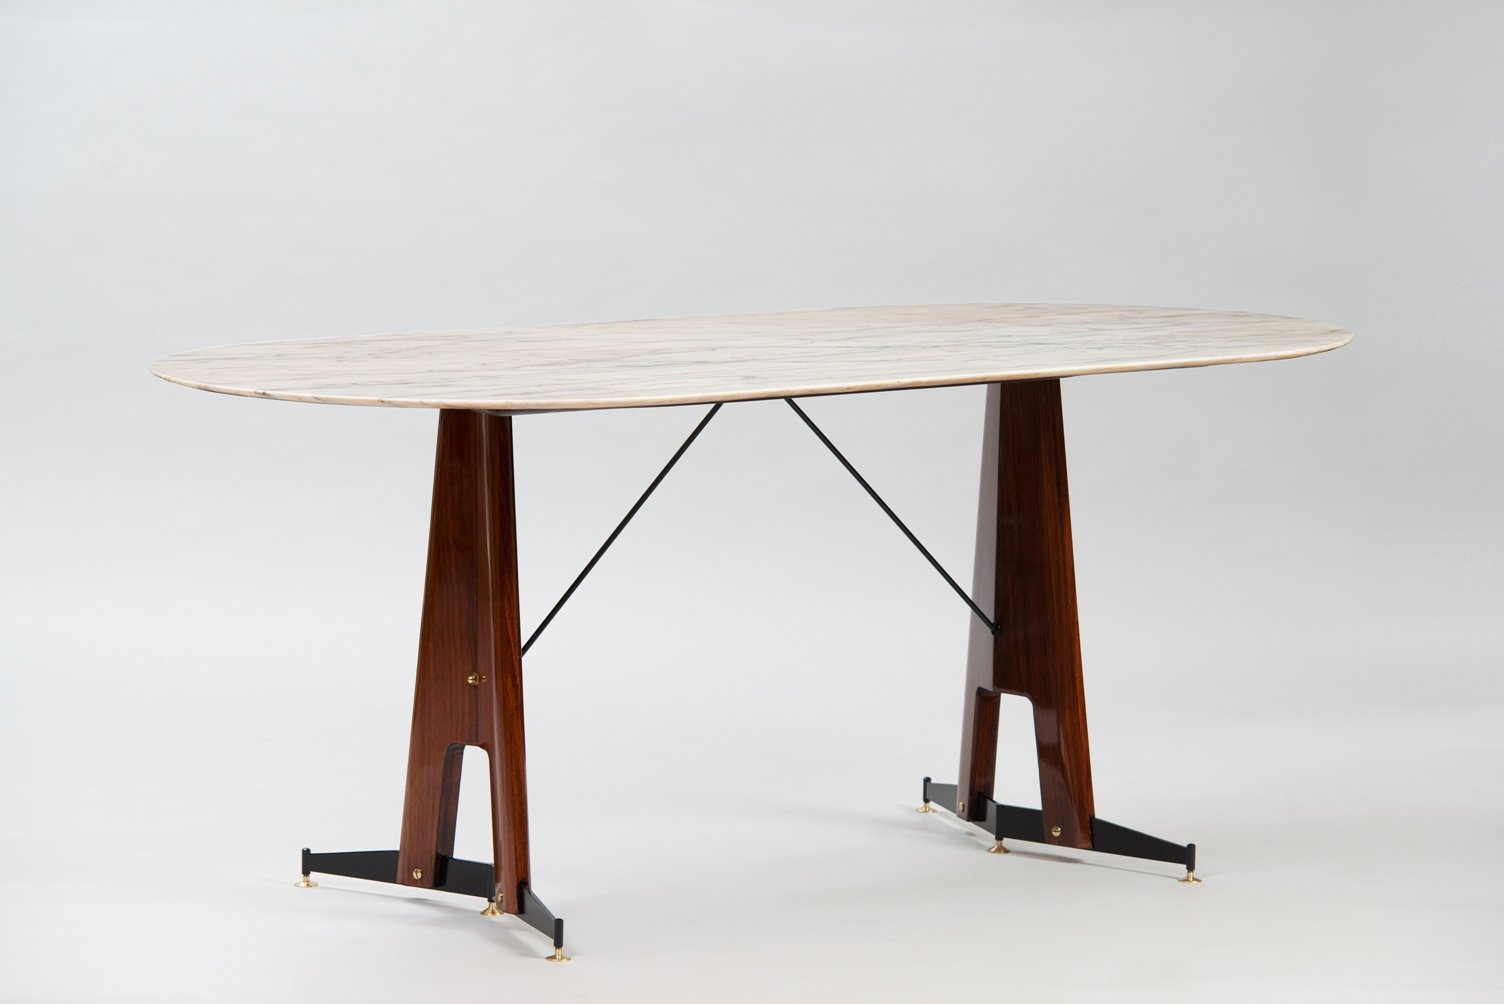 Best table salle a manger marbre design ideas lalawgroup for Table salle a manger design